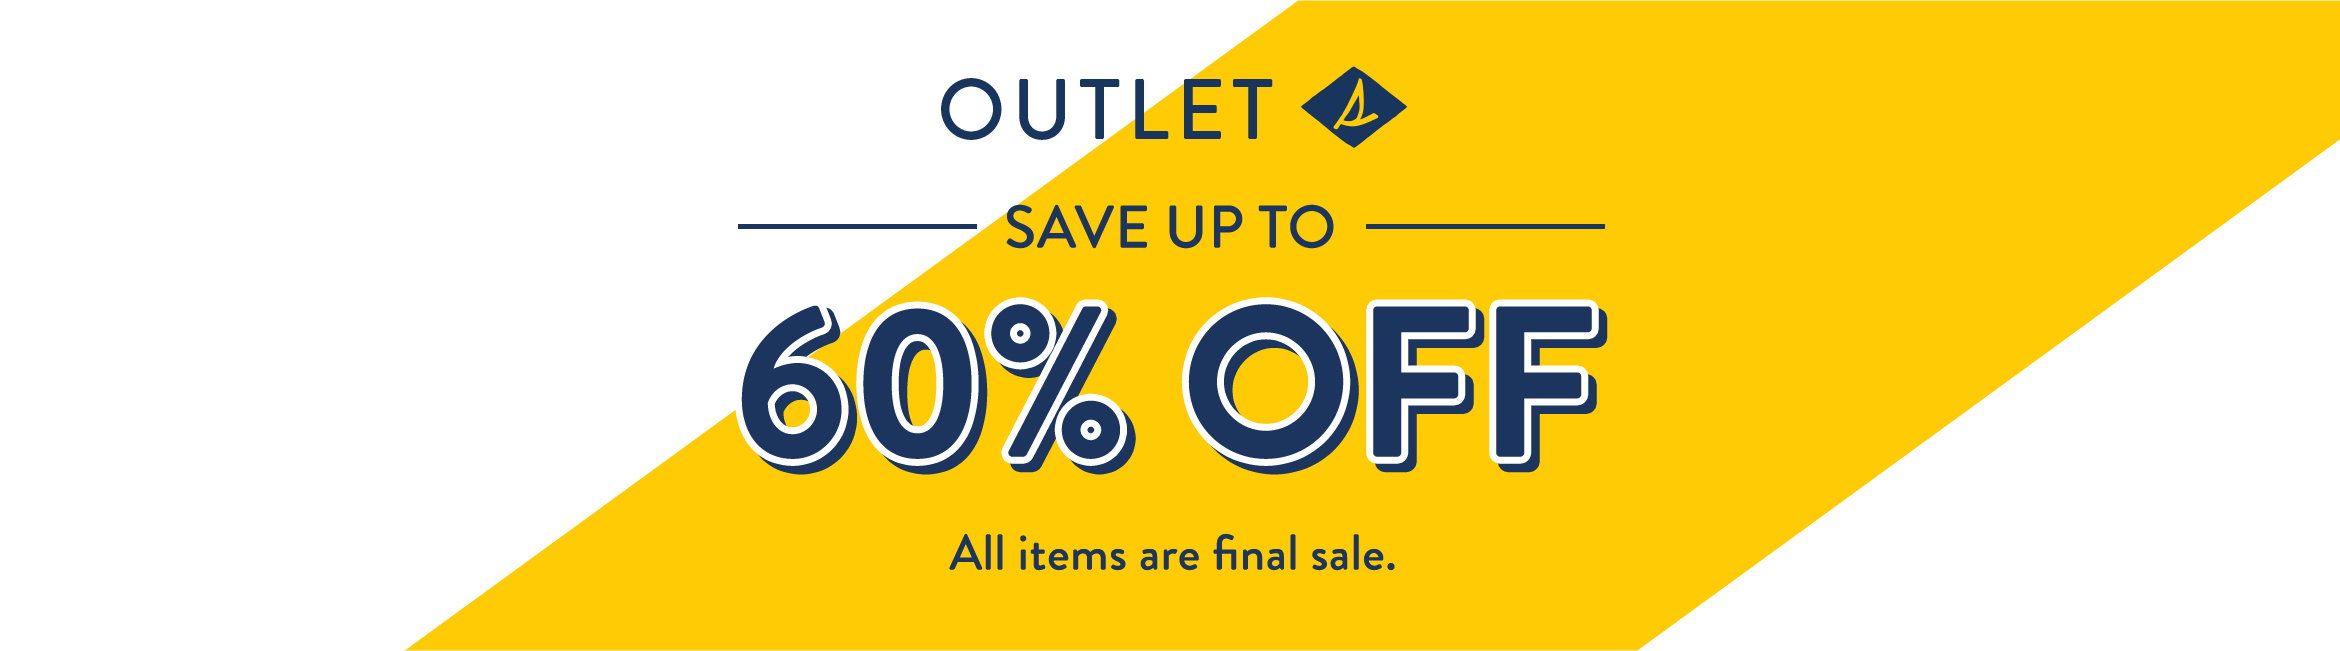 Sperry Outlet. Save up to 60% off. All items are final sale.